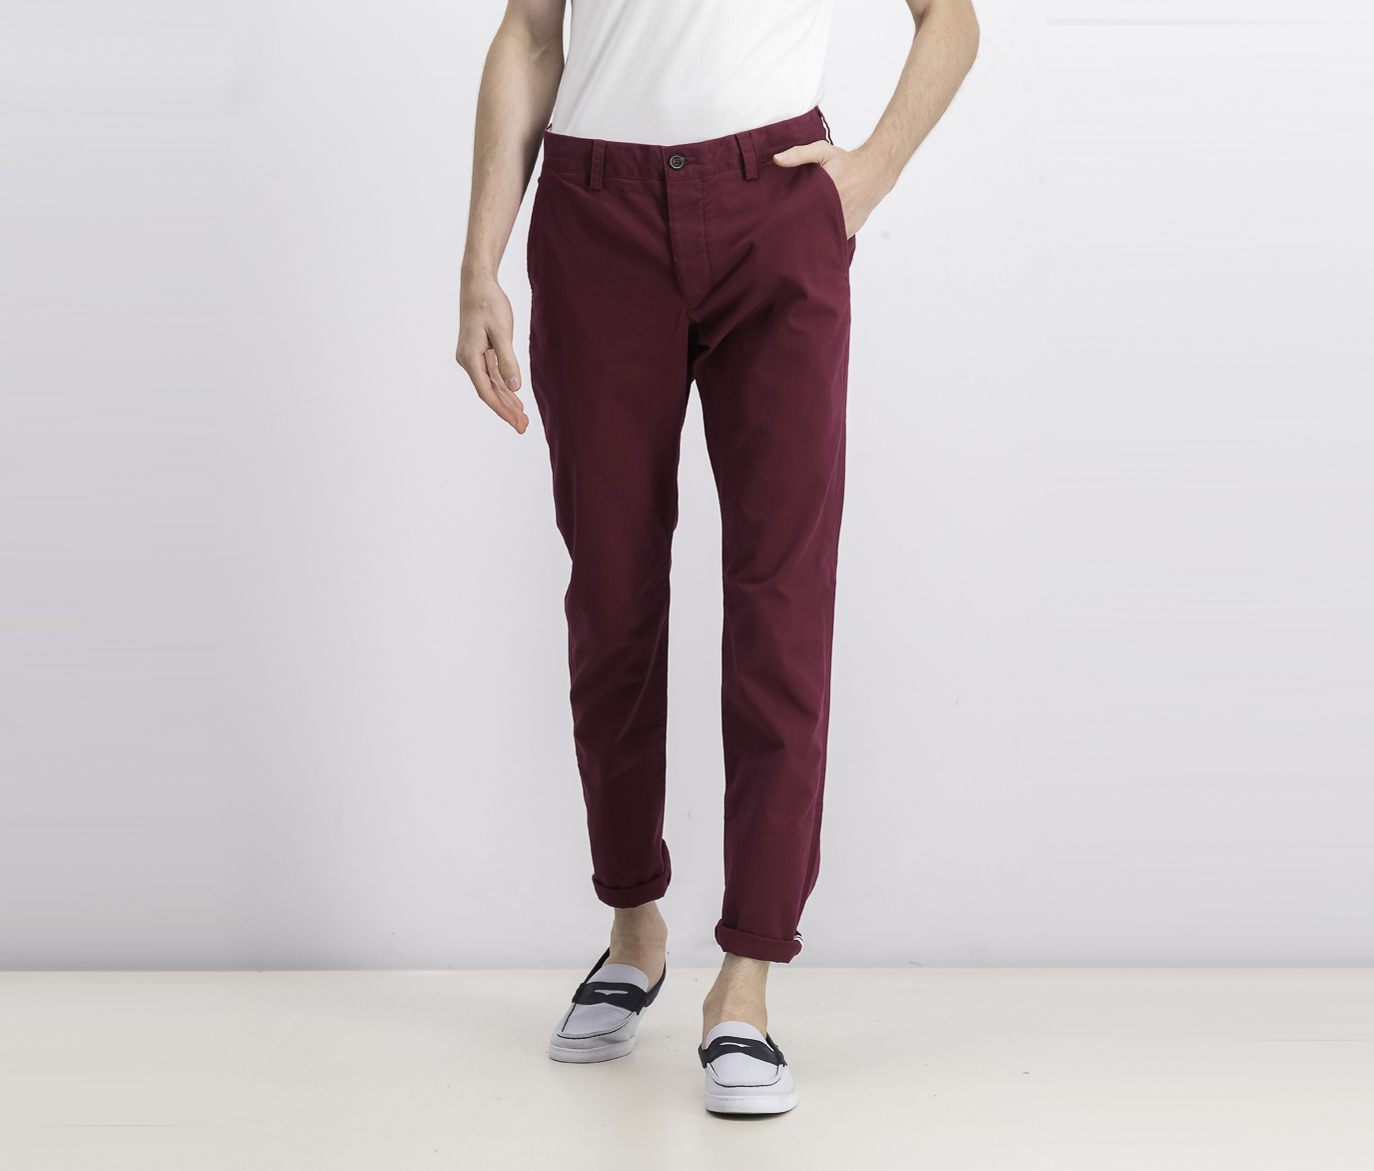 Men's Machine Gun Stretch Slim Pants, Raspberry Beret Red